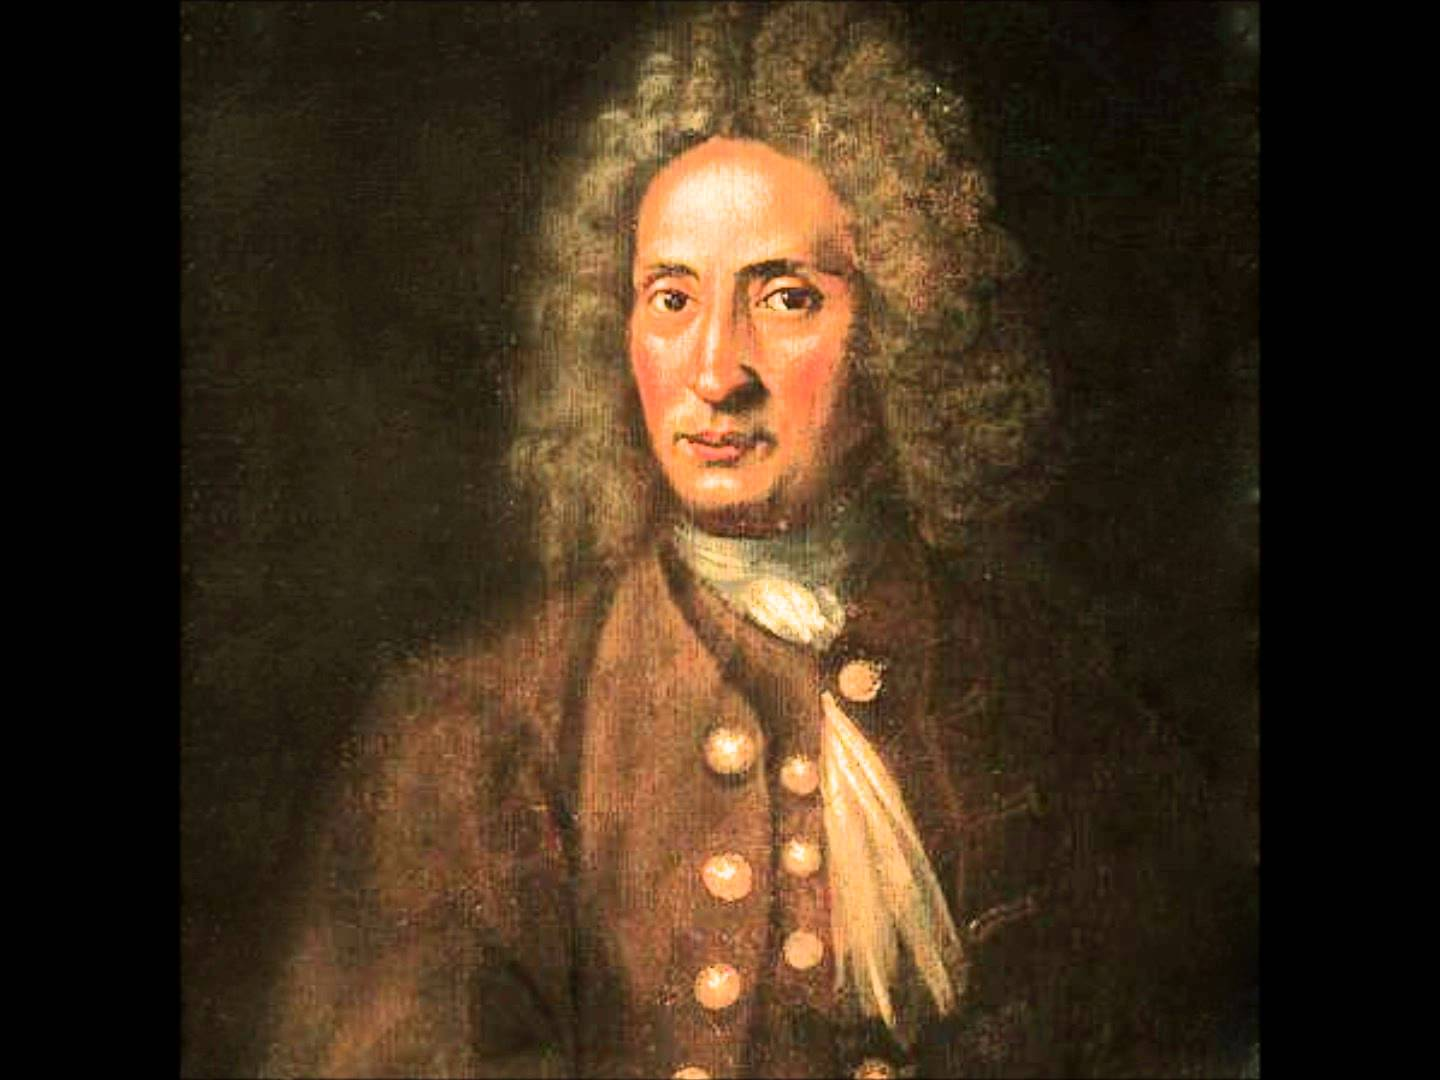 Giuseppe Torelli (1658-1709): The Original Brandenburg Concertos